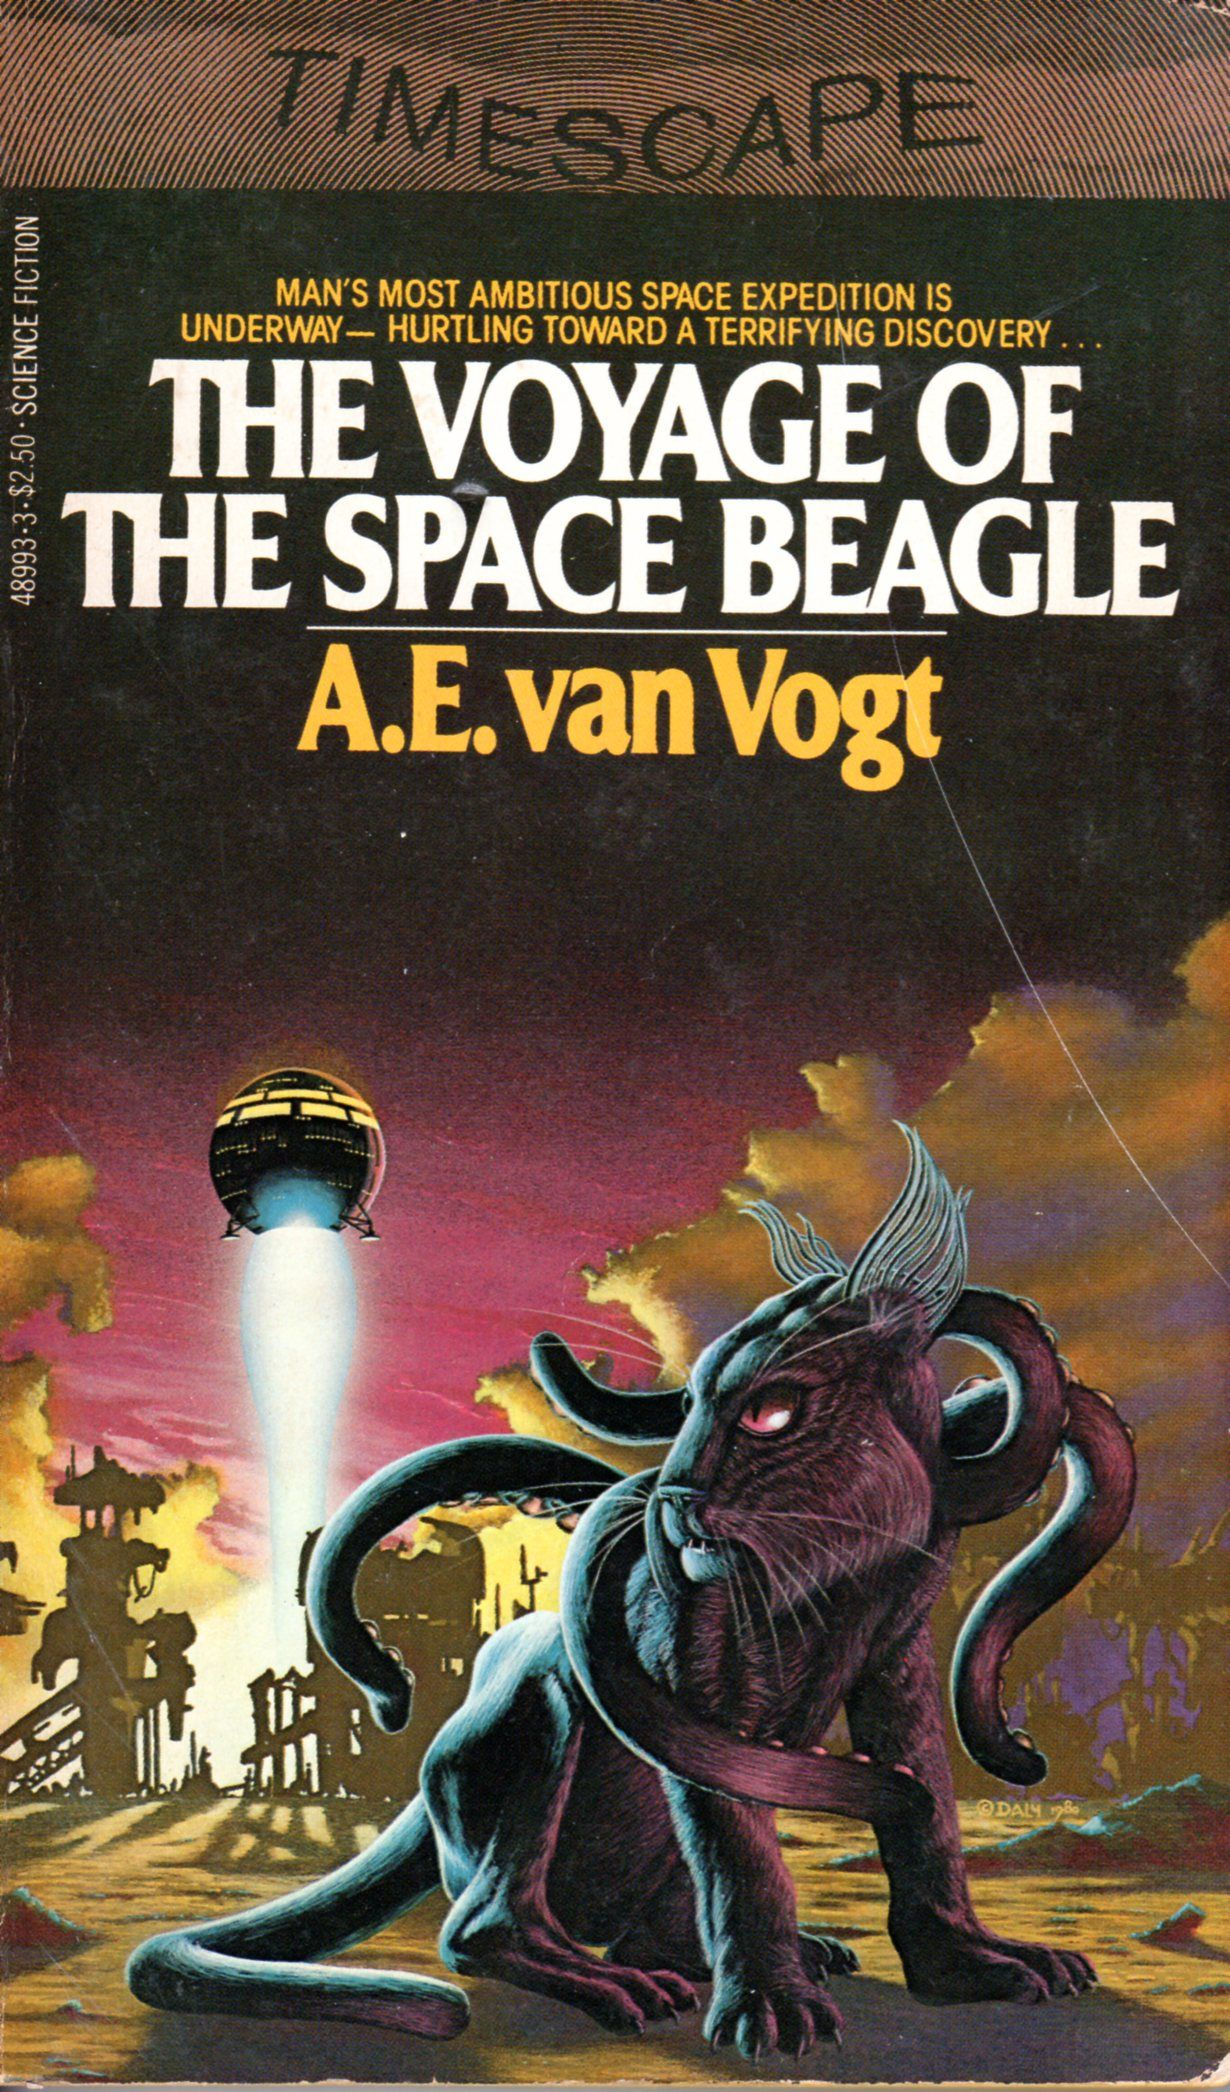 The Voyage Of The Space Beagle A E Van Vogt Cover By Gerry